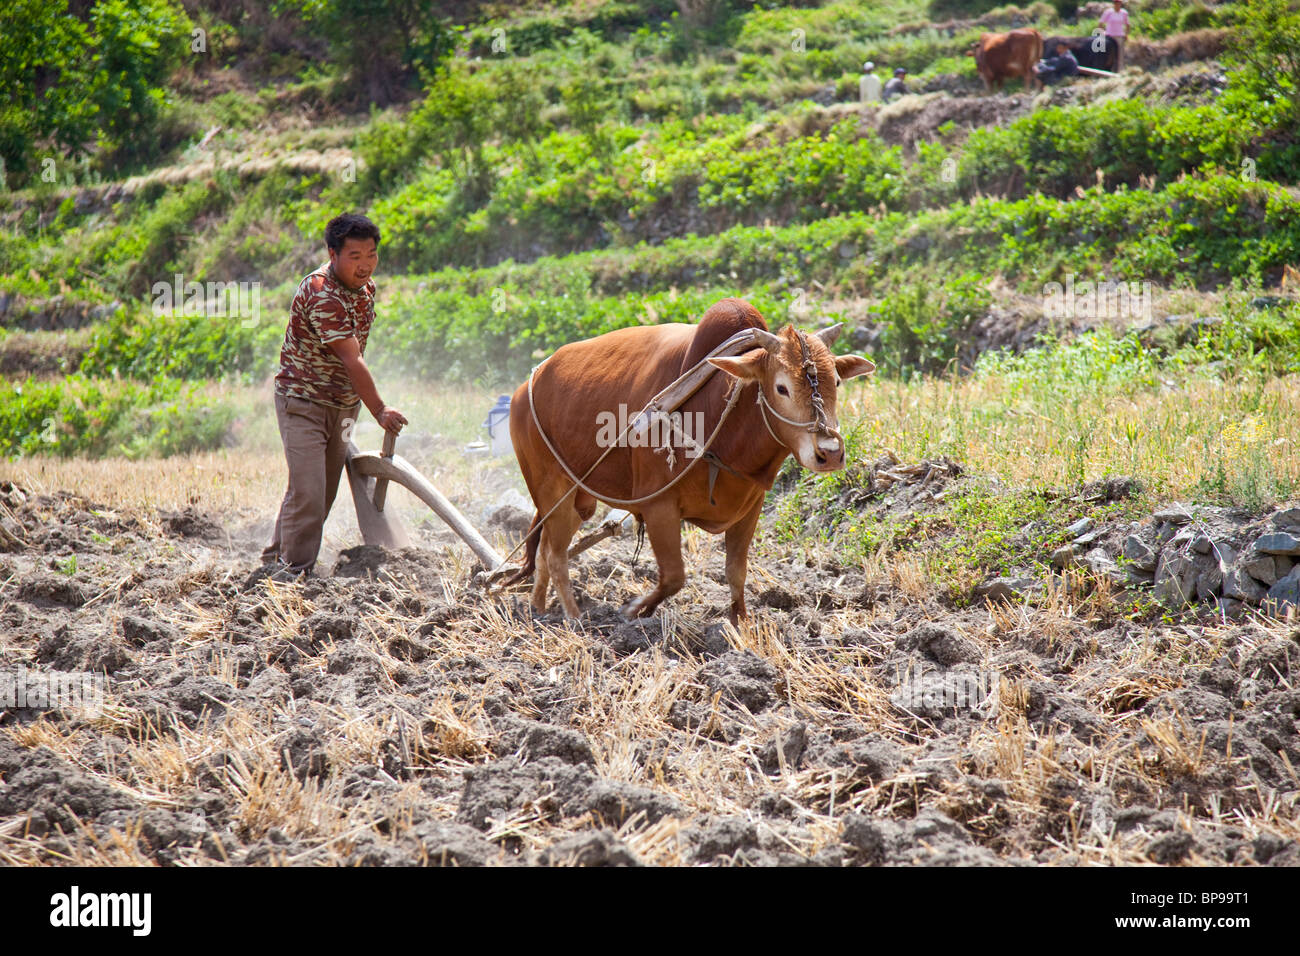 Farmer plowing field along Tiger Leaping Gorge, Southern Yunnan Province, China - Stock Image